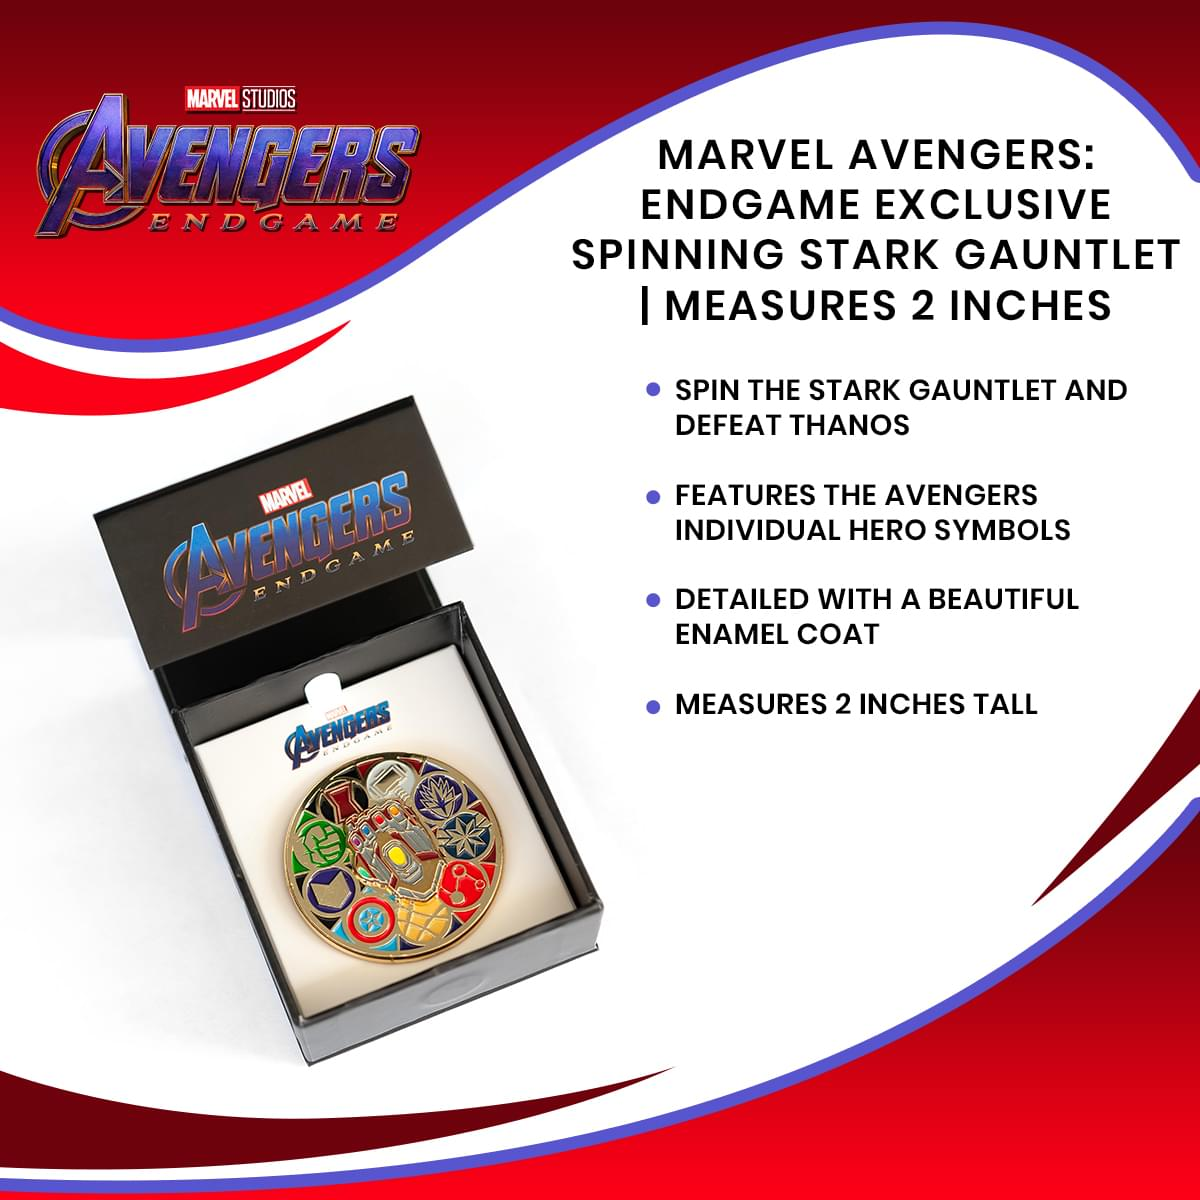 Marvel Avengers: Endgame Exclusive Spinning Stark Gauntlet | Measures 2 Inches